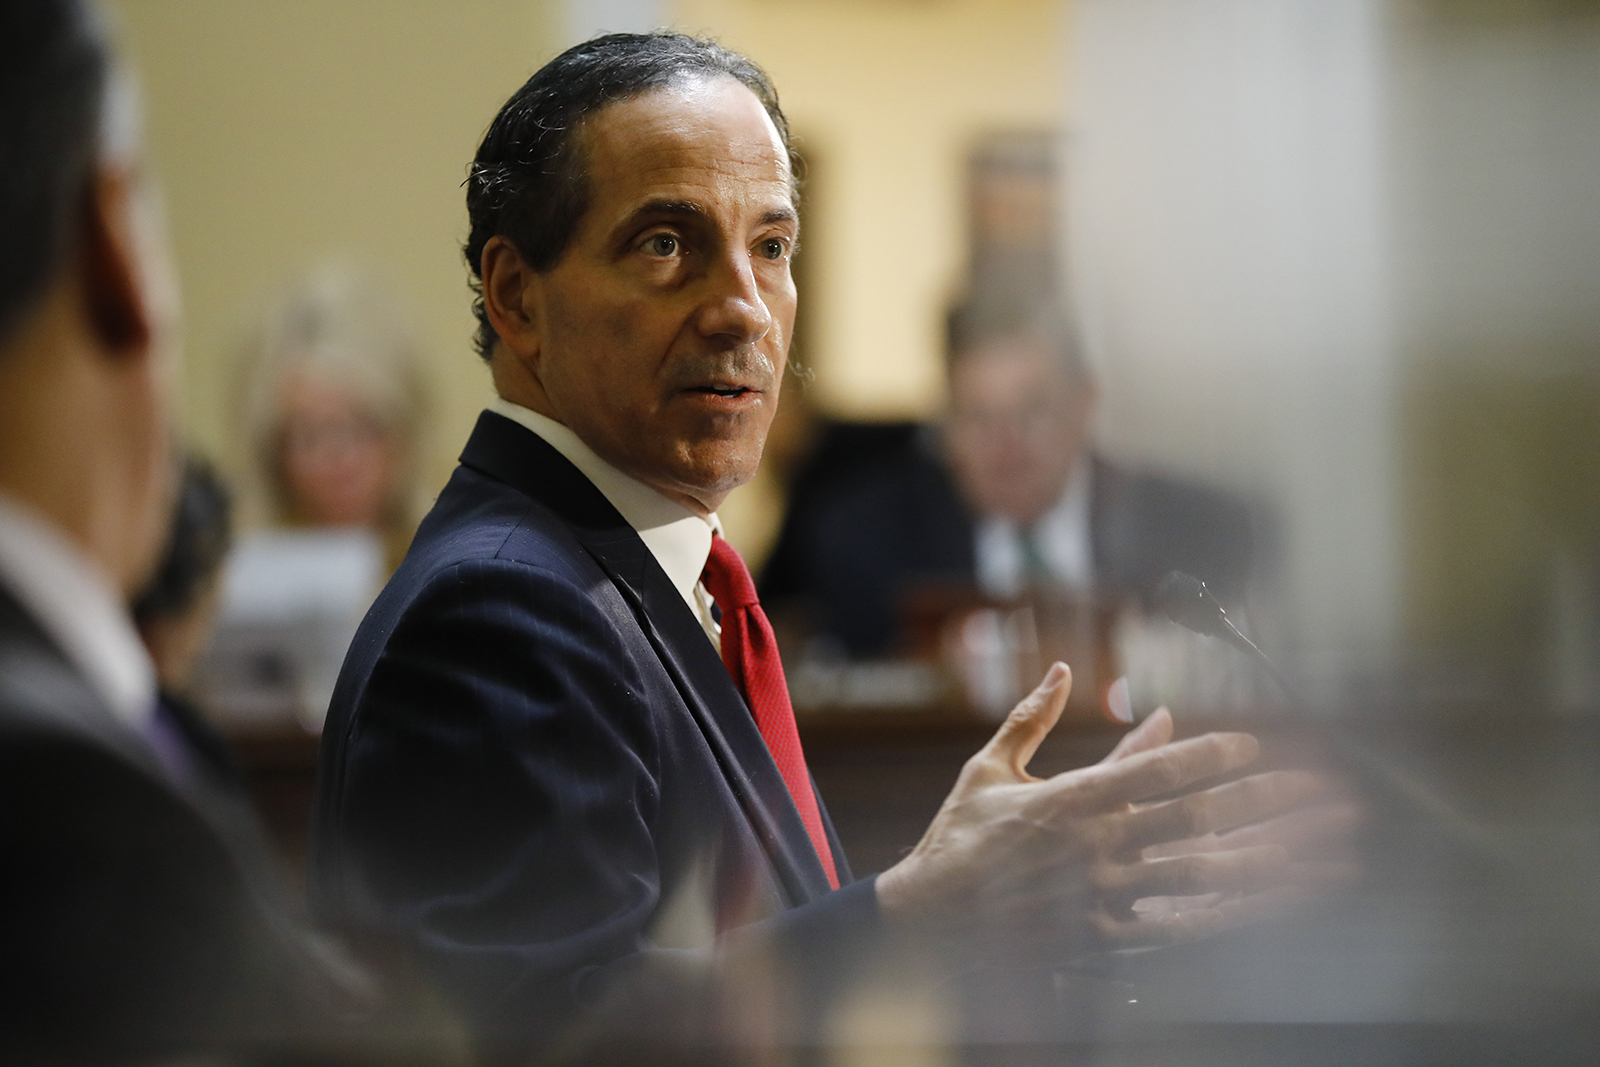 Raskin: I am not going to lose my son in 2020 and country in 2021